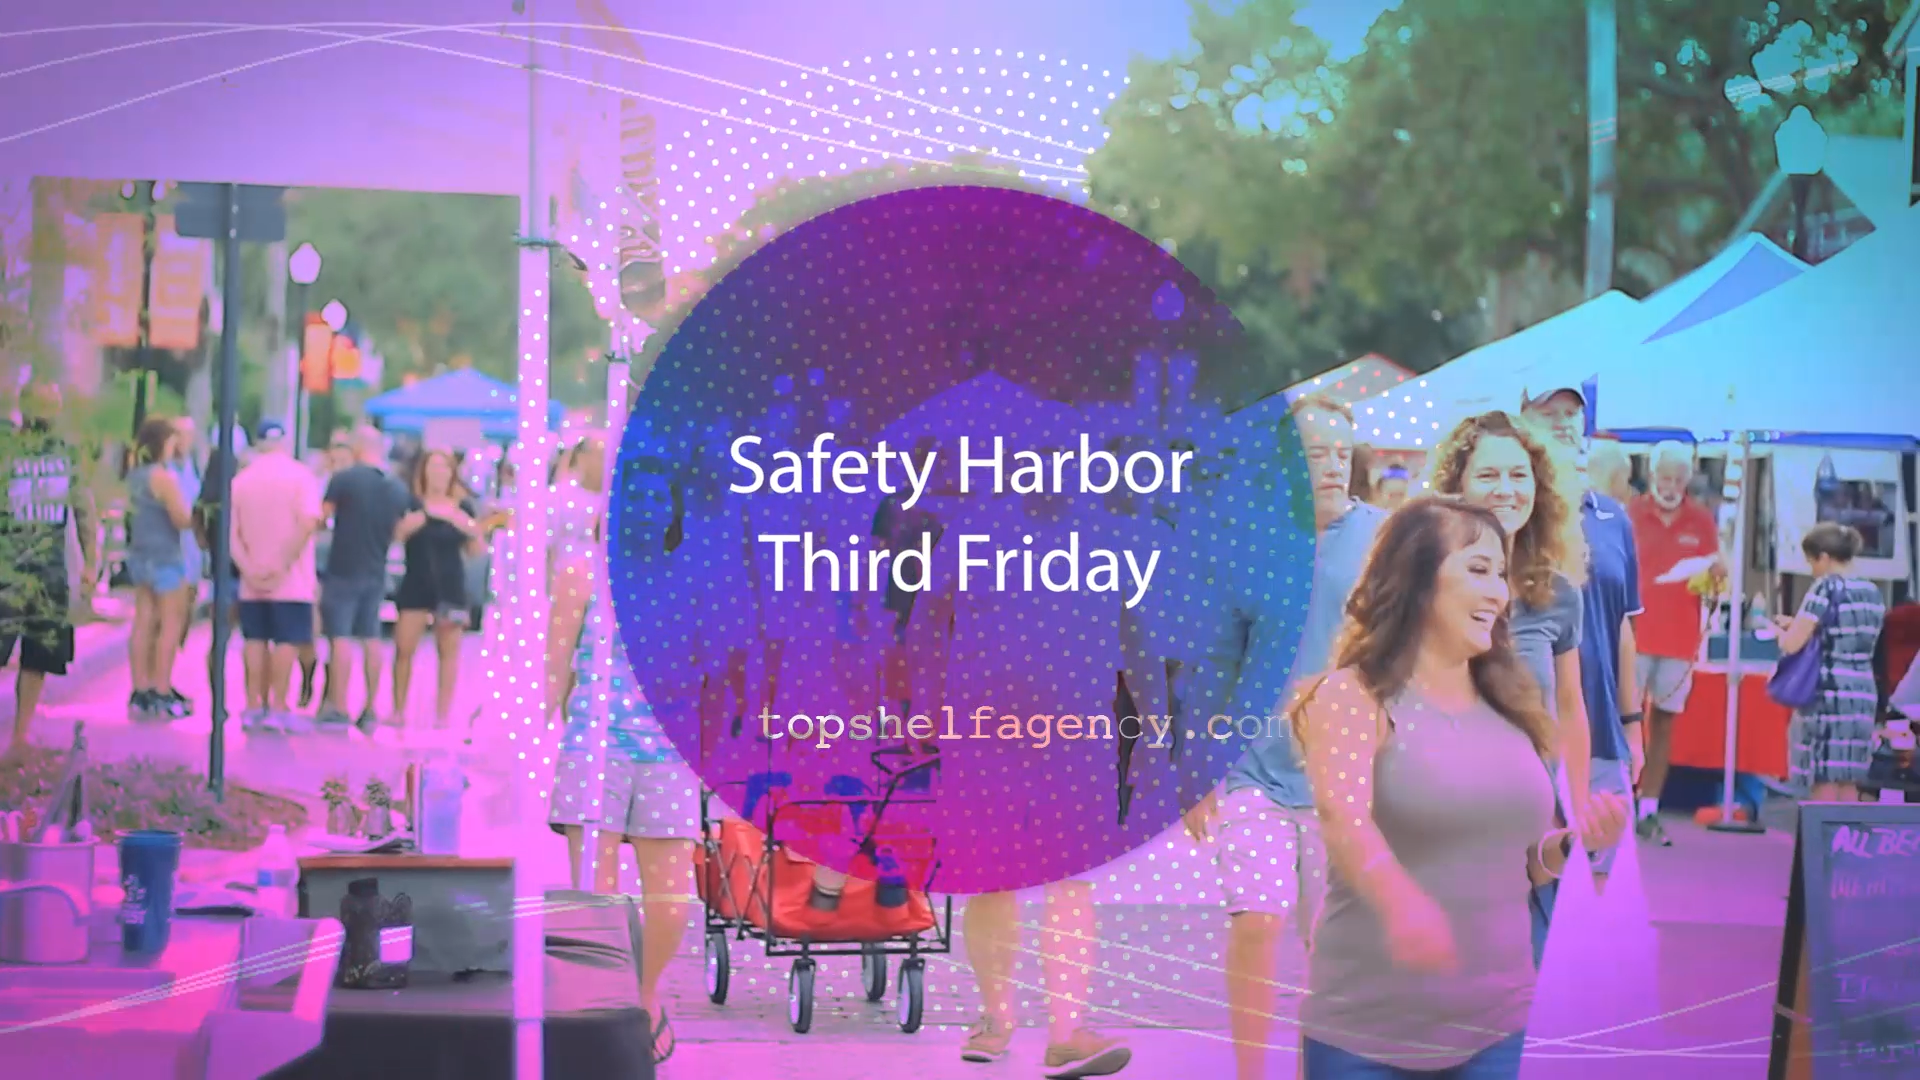 Safety Harbor Third Friday